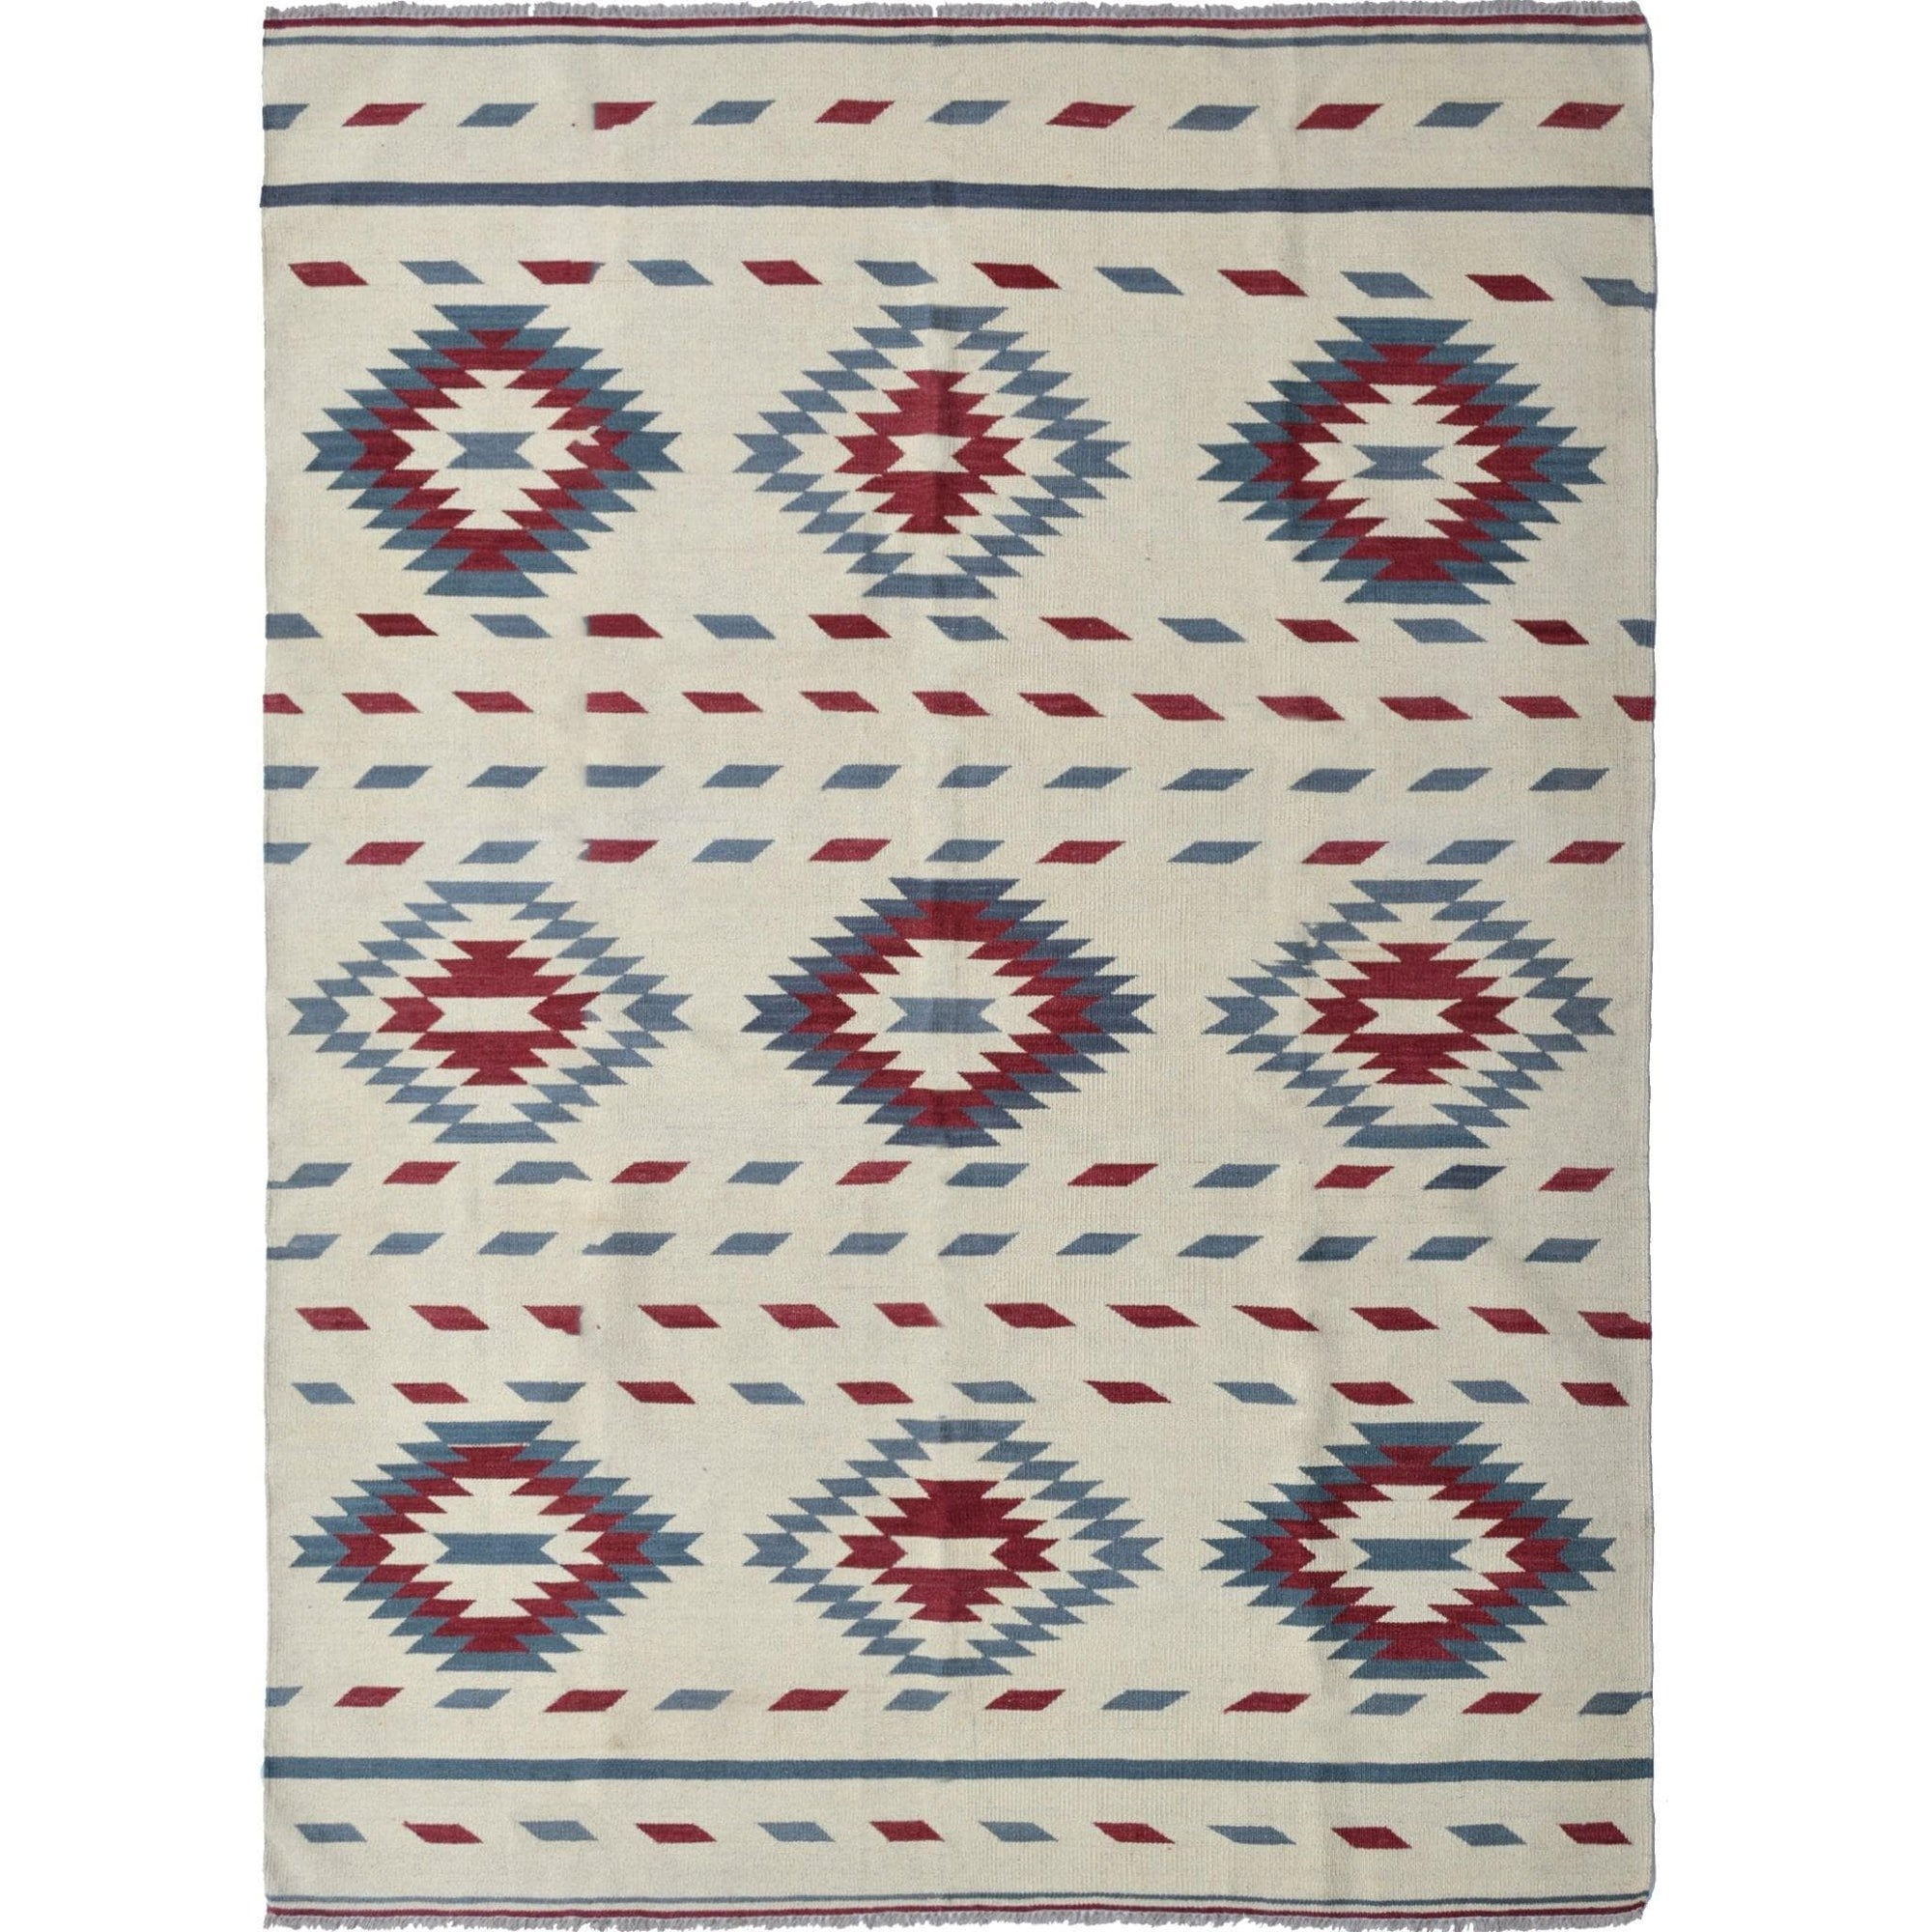 Modern Hand-woven 100% Wool Afghan Chobi Kilim Rug 1.81cm x 241cm Persian-Rug | House-of-Haghi | NewMarket | Auckland | NZ | Handmade Persian Rugs | Hand Knotted Persian Rugs